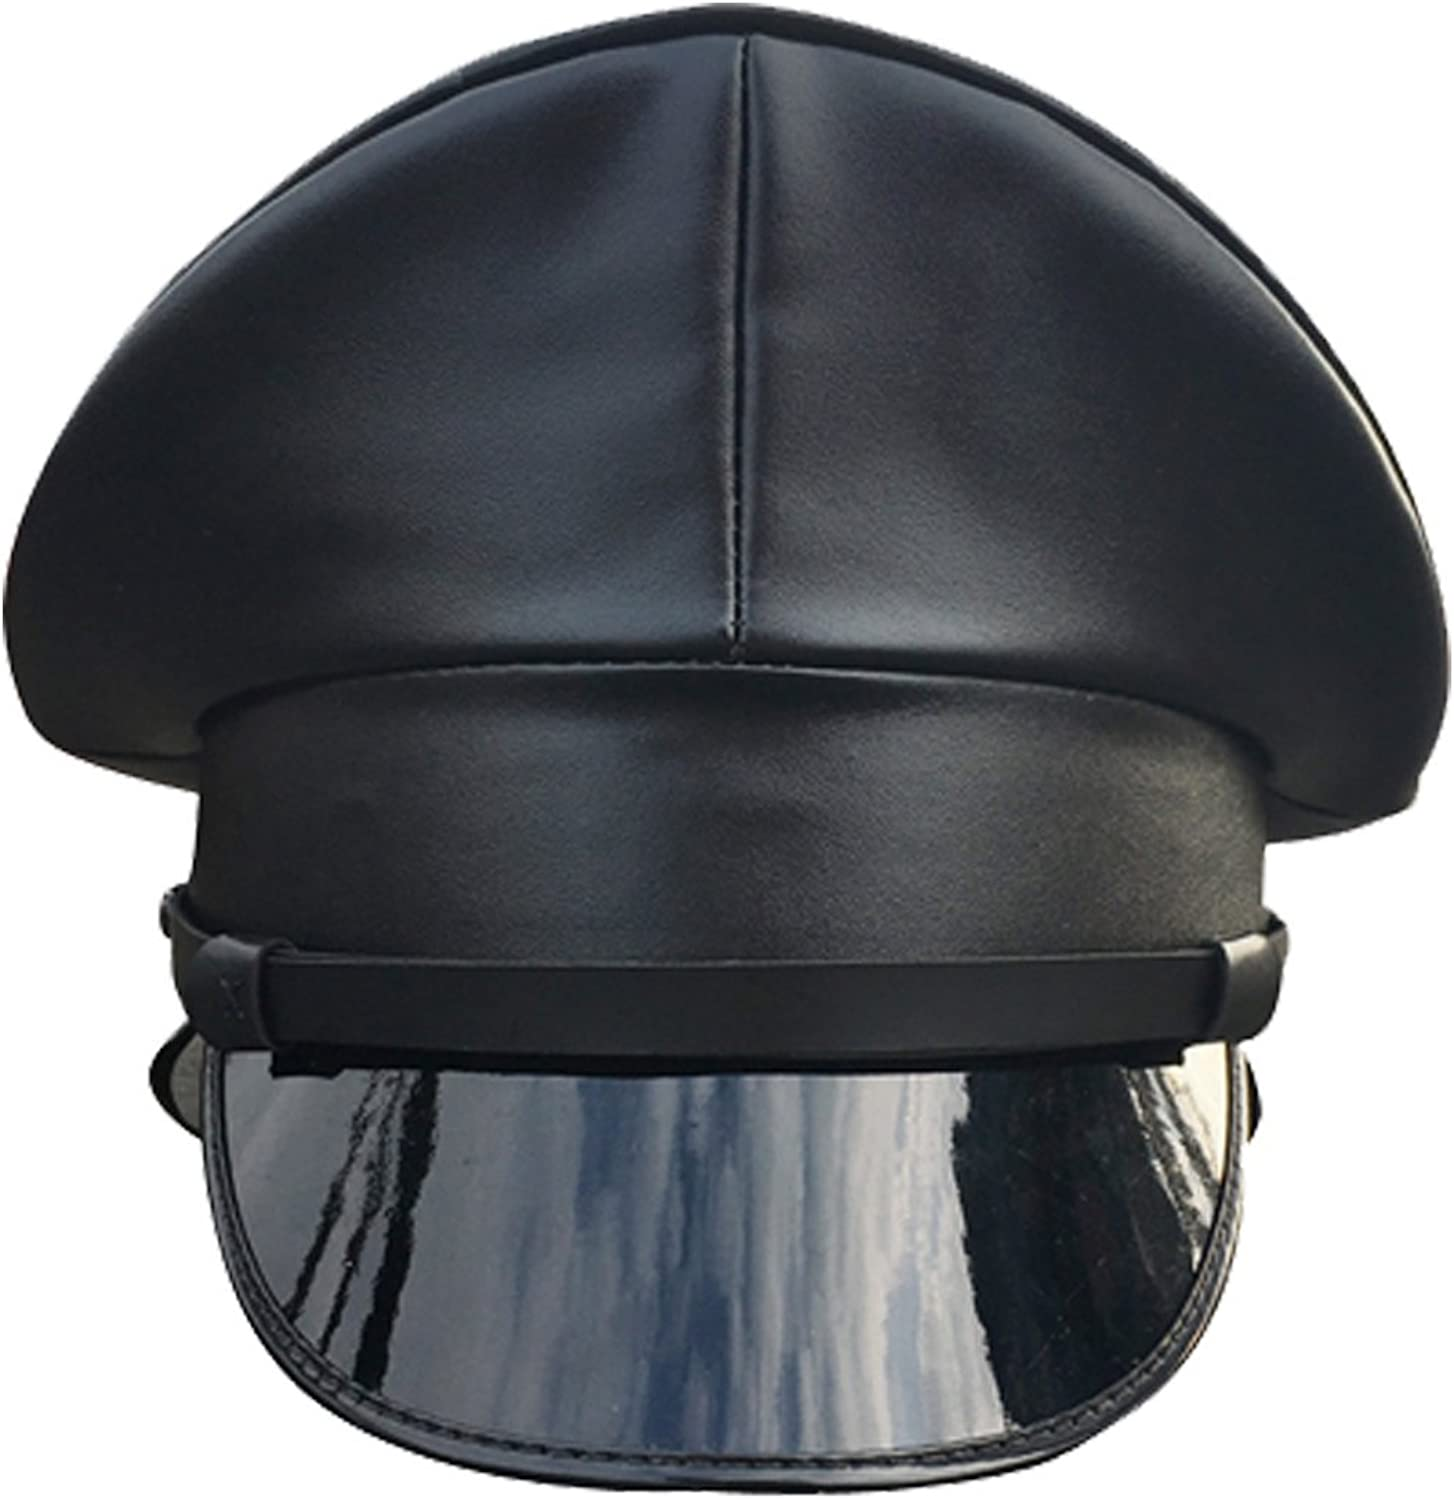 Hao Kaos PU Leather Performance Hat Thailand Military Cap Night Bar Hat